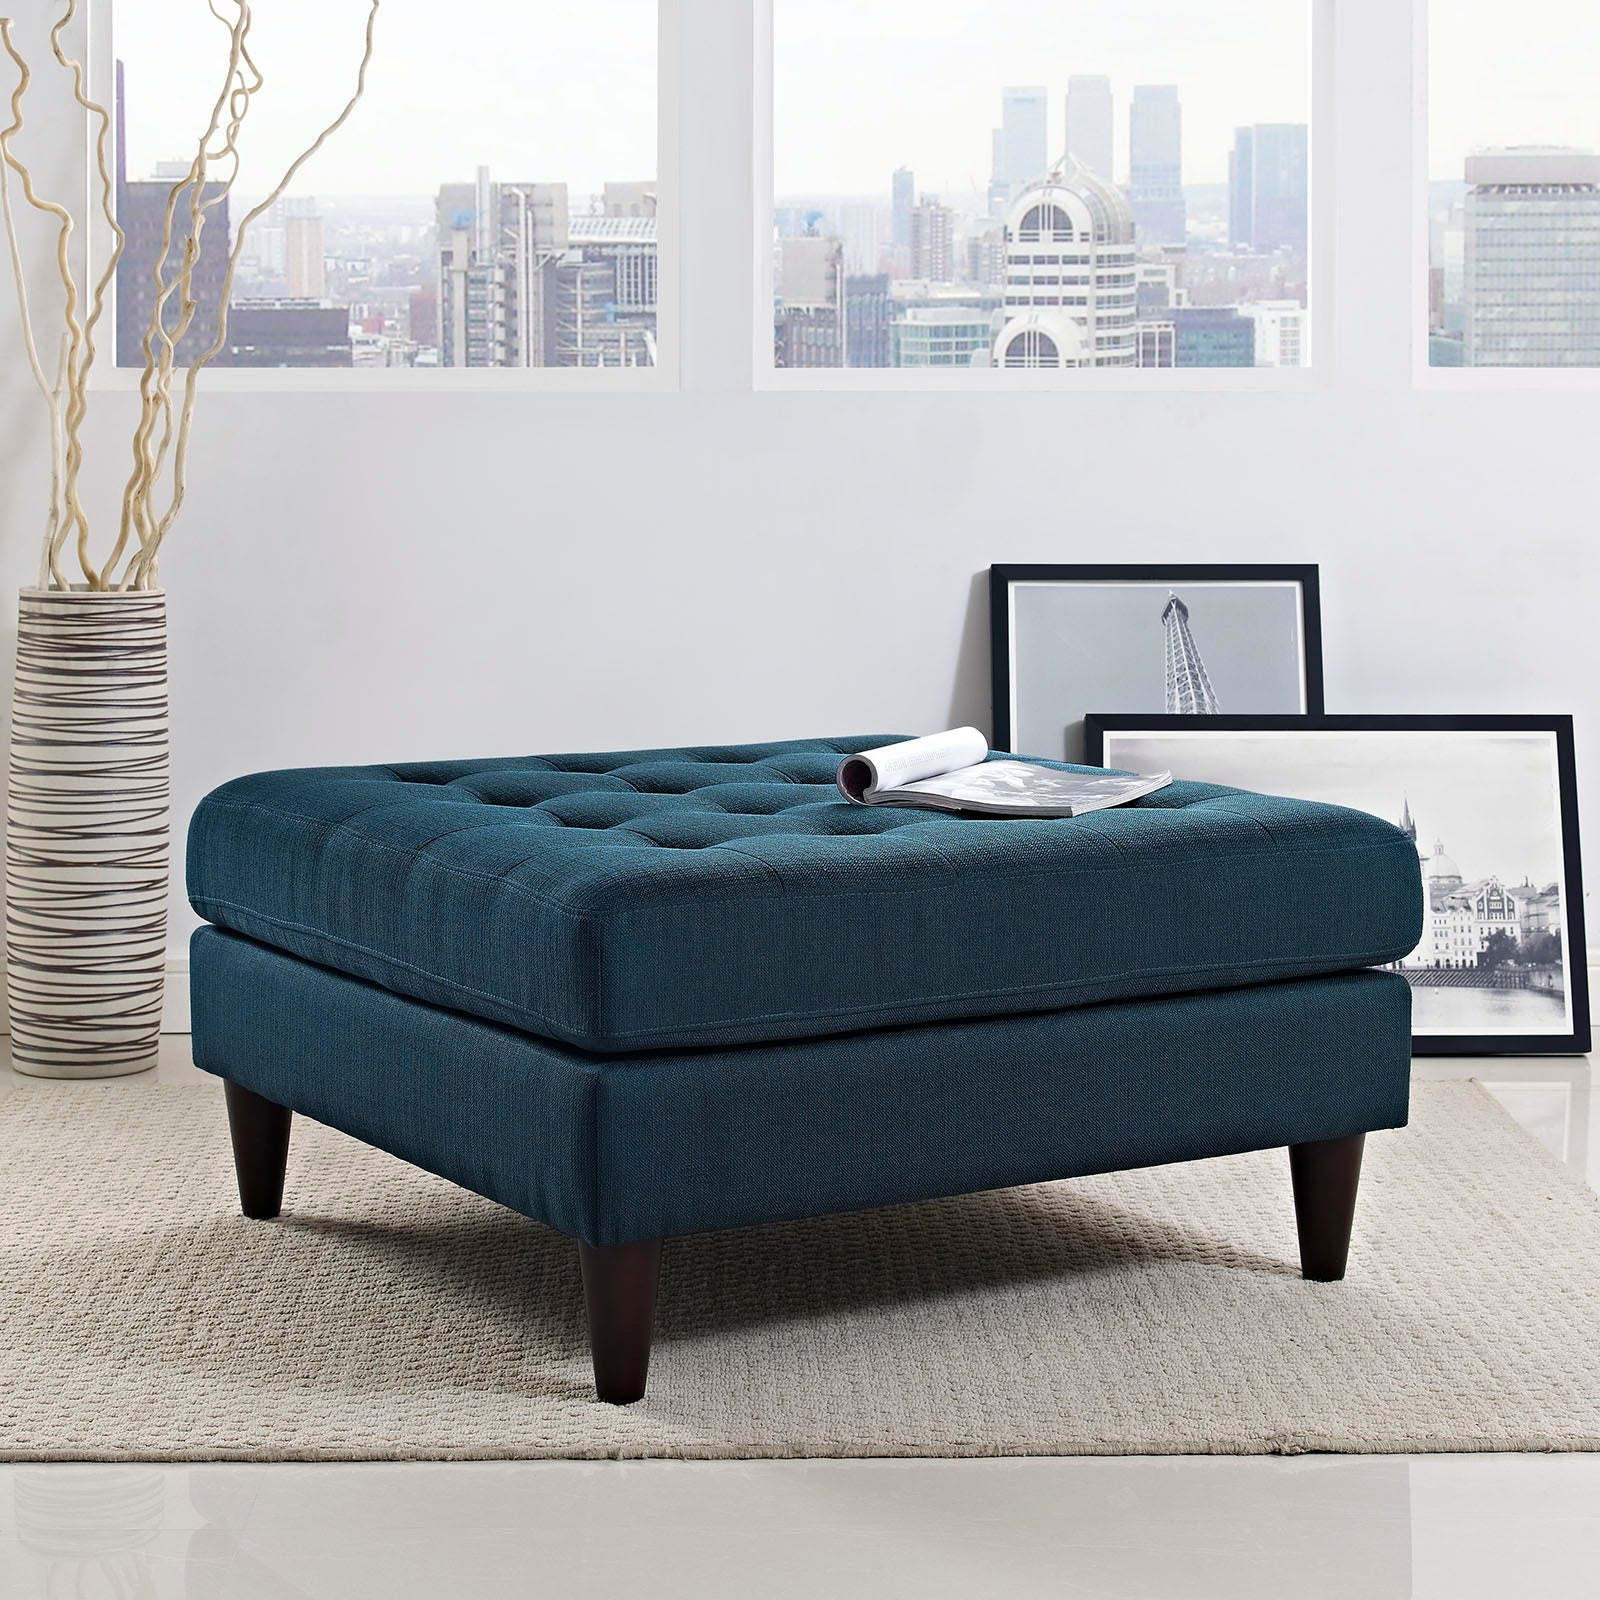 Empress Upholstered Fabric Large Ottoman - Azure